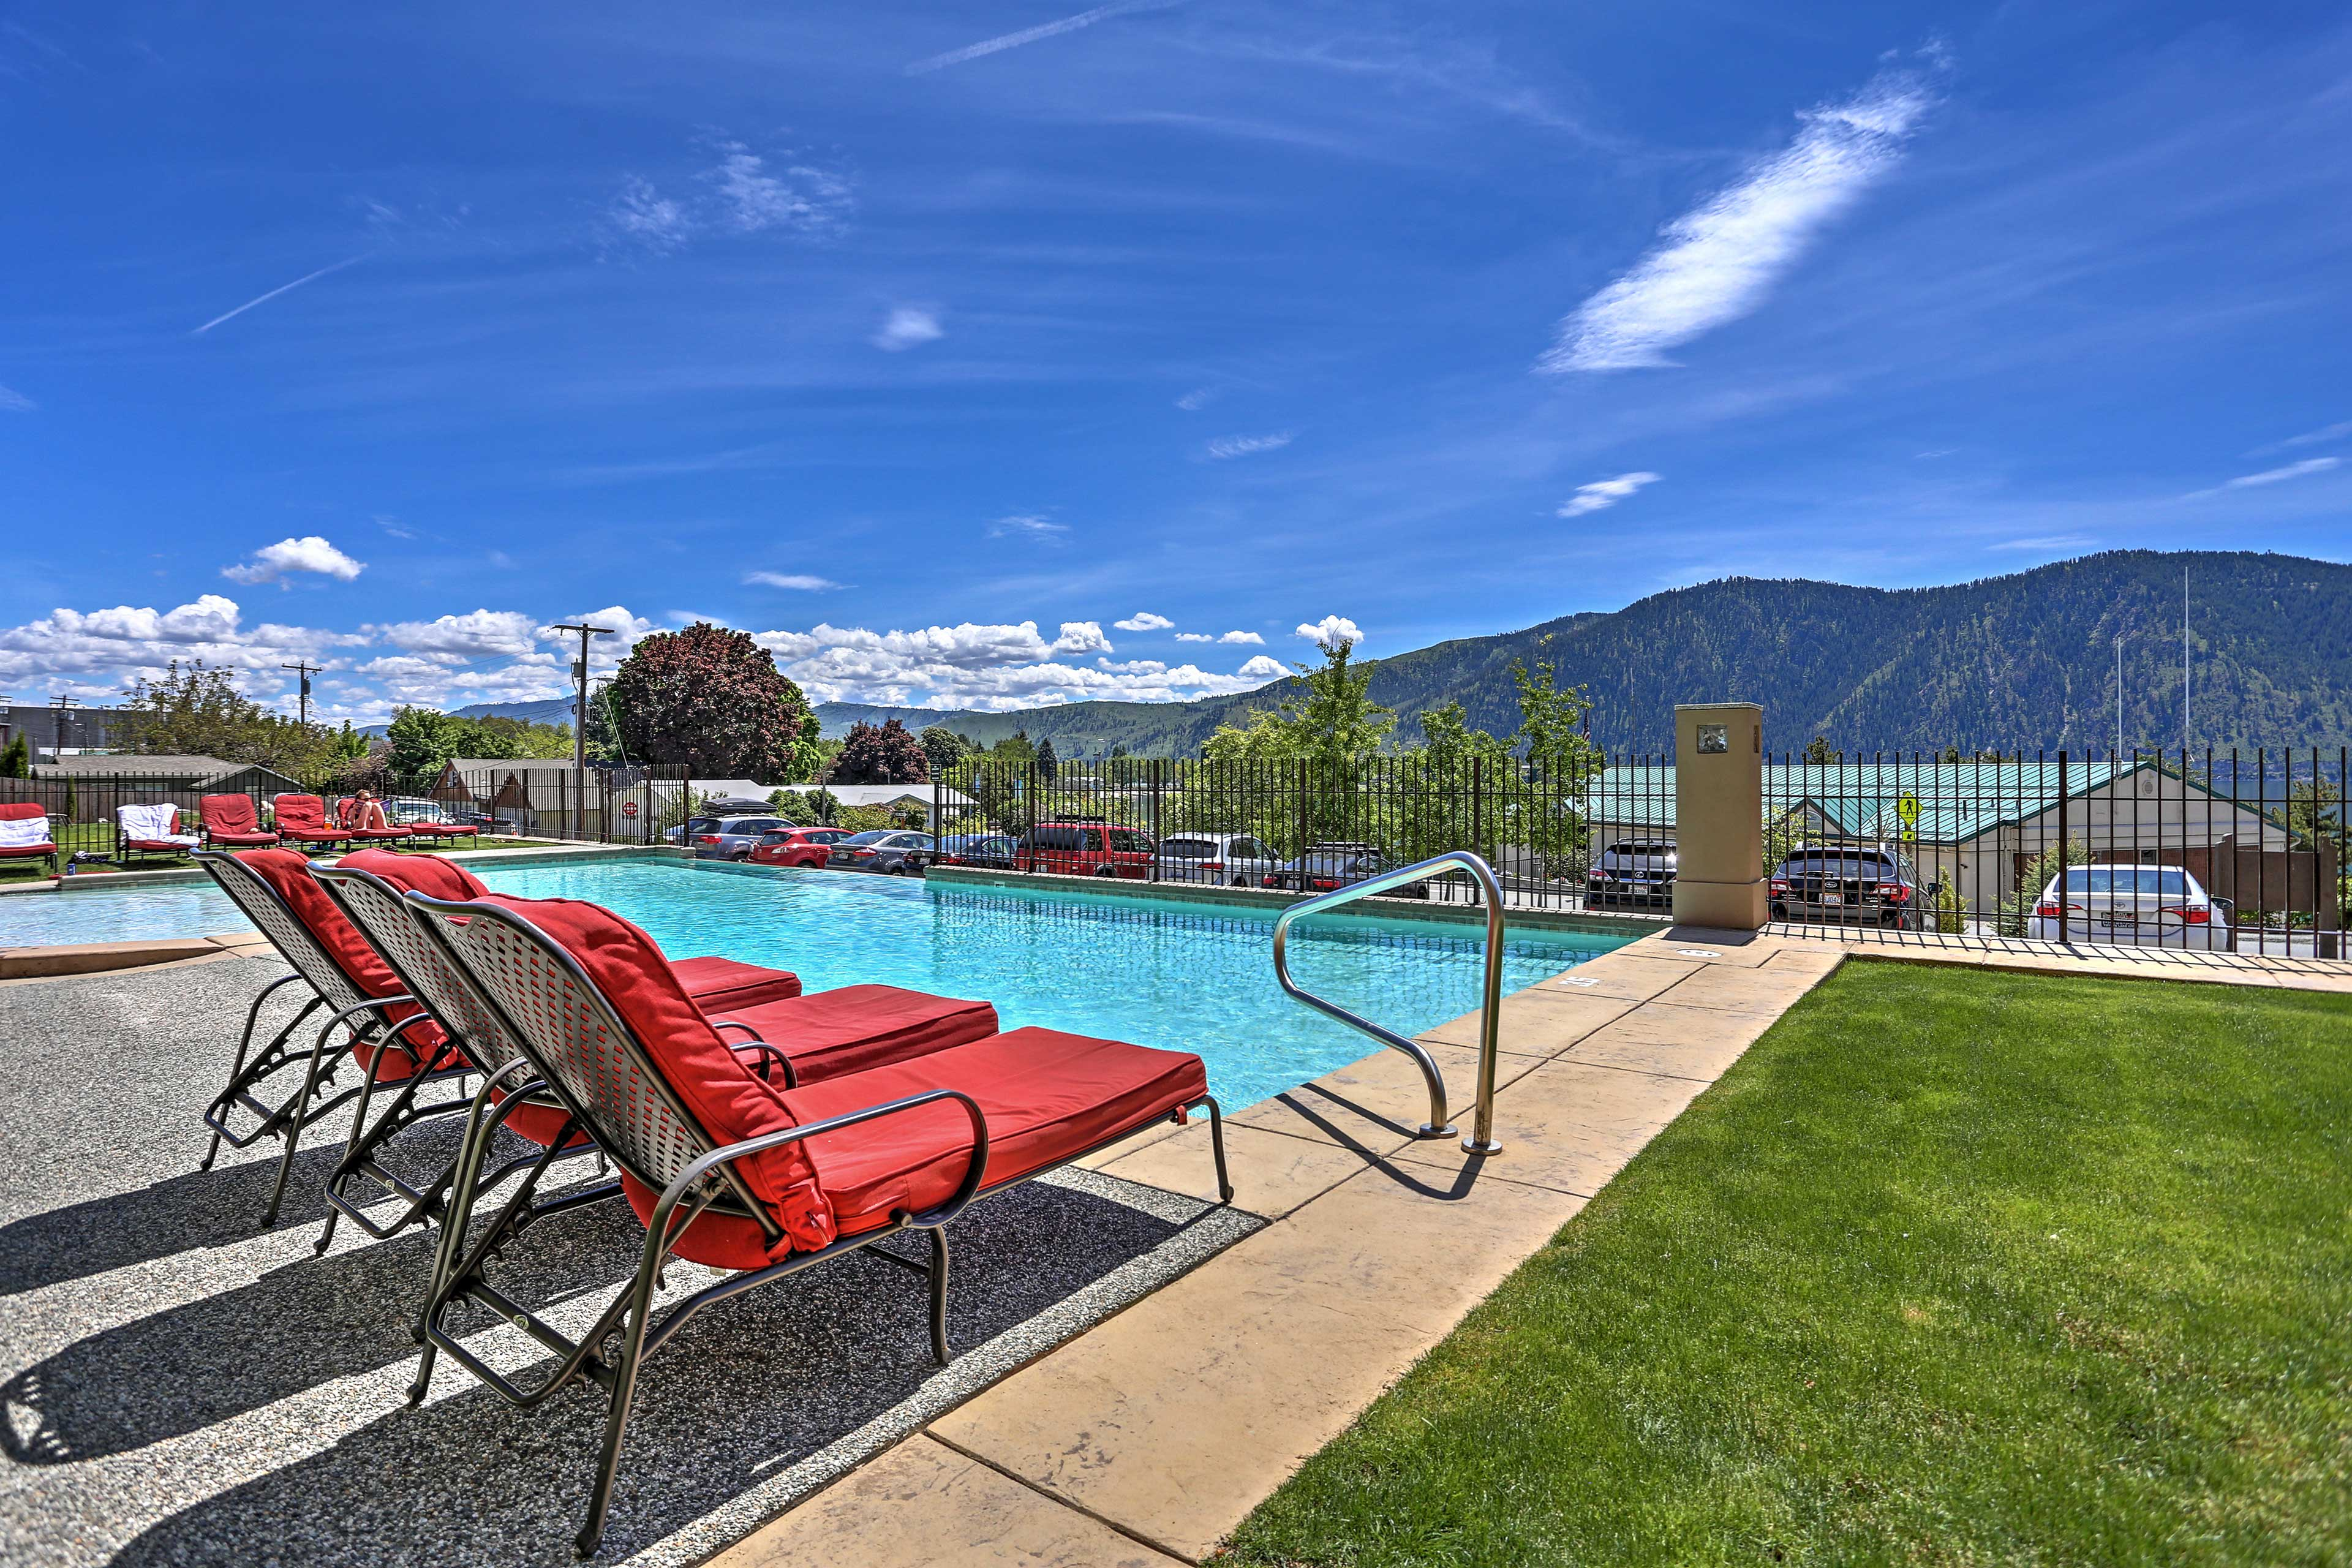 The infinity edge pool was designed to give you the best vacation possible on Lake Chelan.